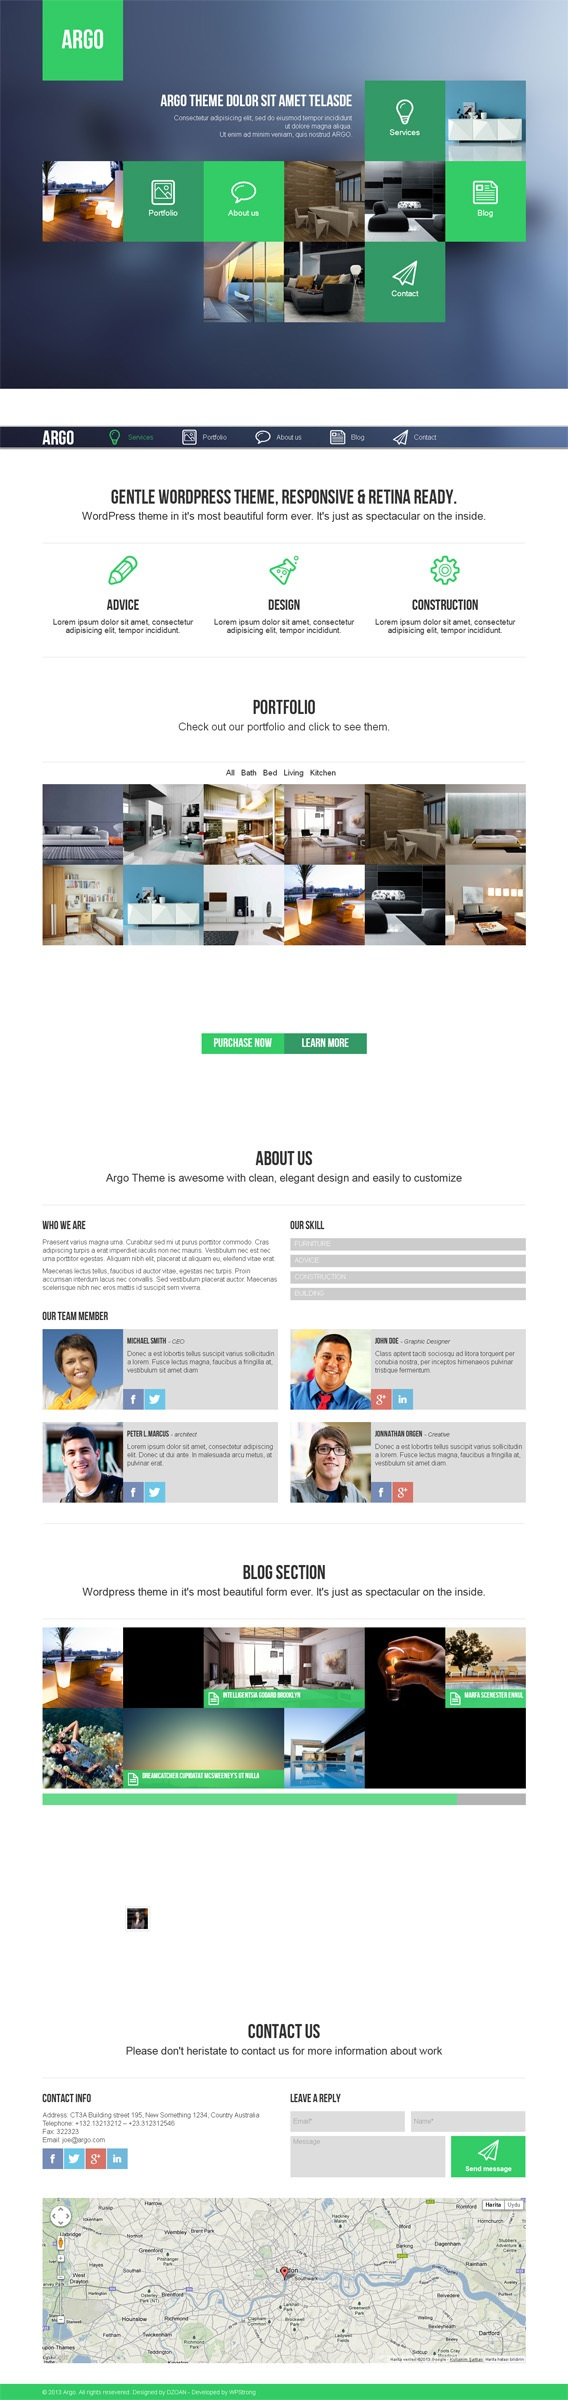 Argo, WordPress OnePage Metro UI Creative Theme by Premium Themes, via Behance